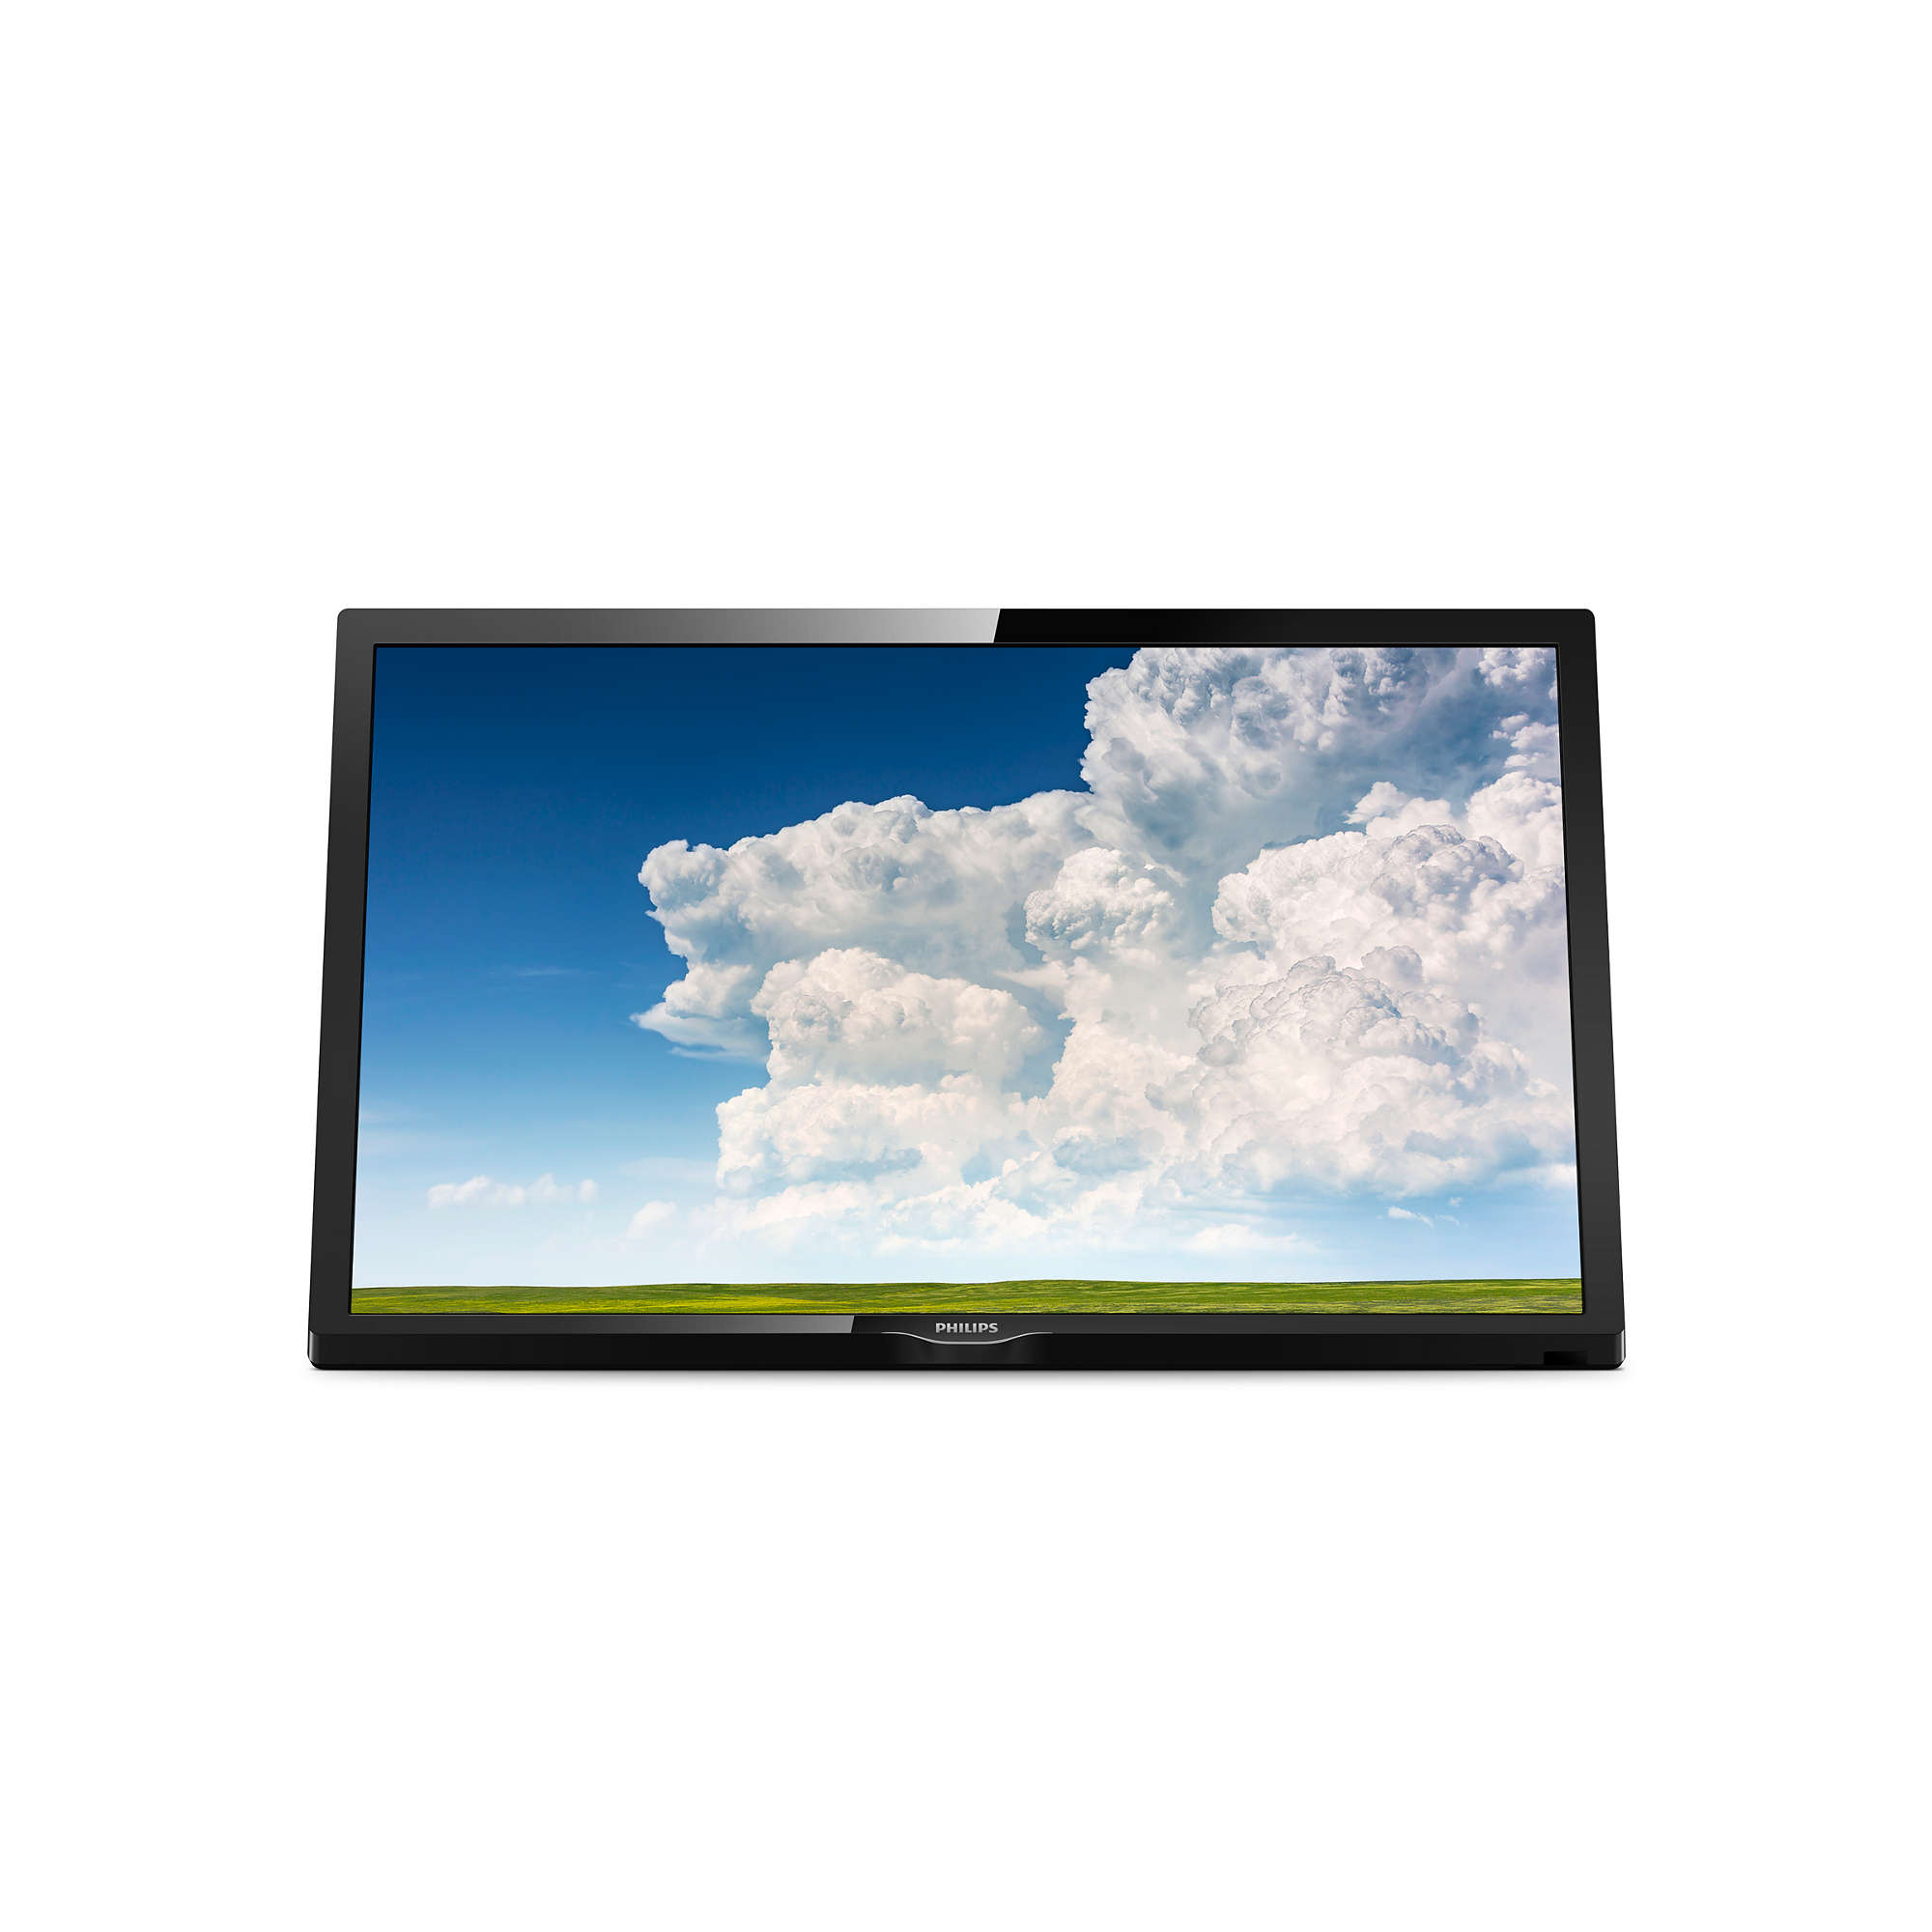 Philips 24PHS4304/12  24 (60 cm), LED HD, 1366 x 768, DVB-T/T2/C/S/S2, Black LED Televizors